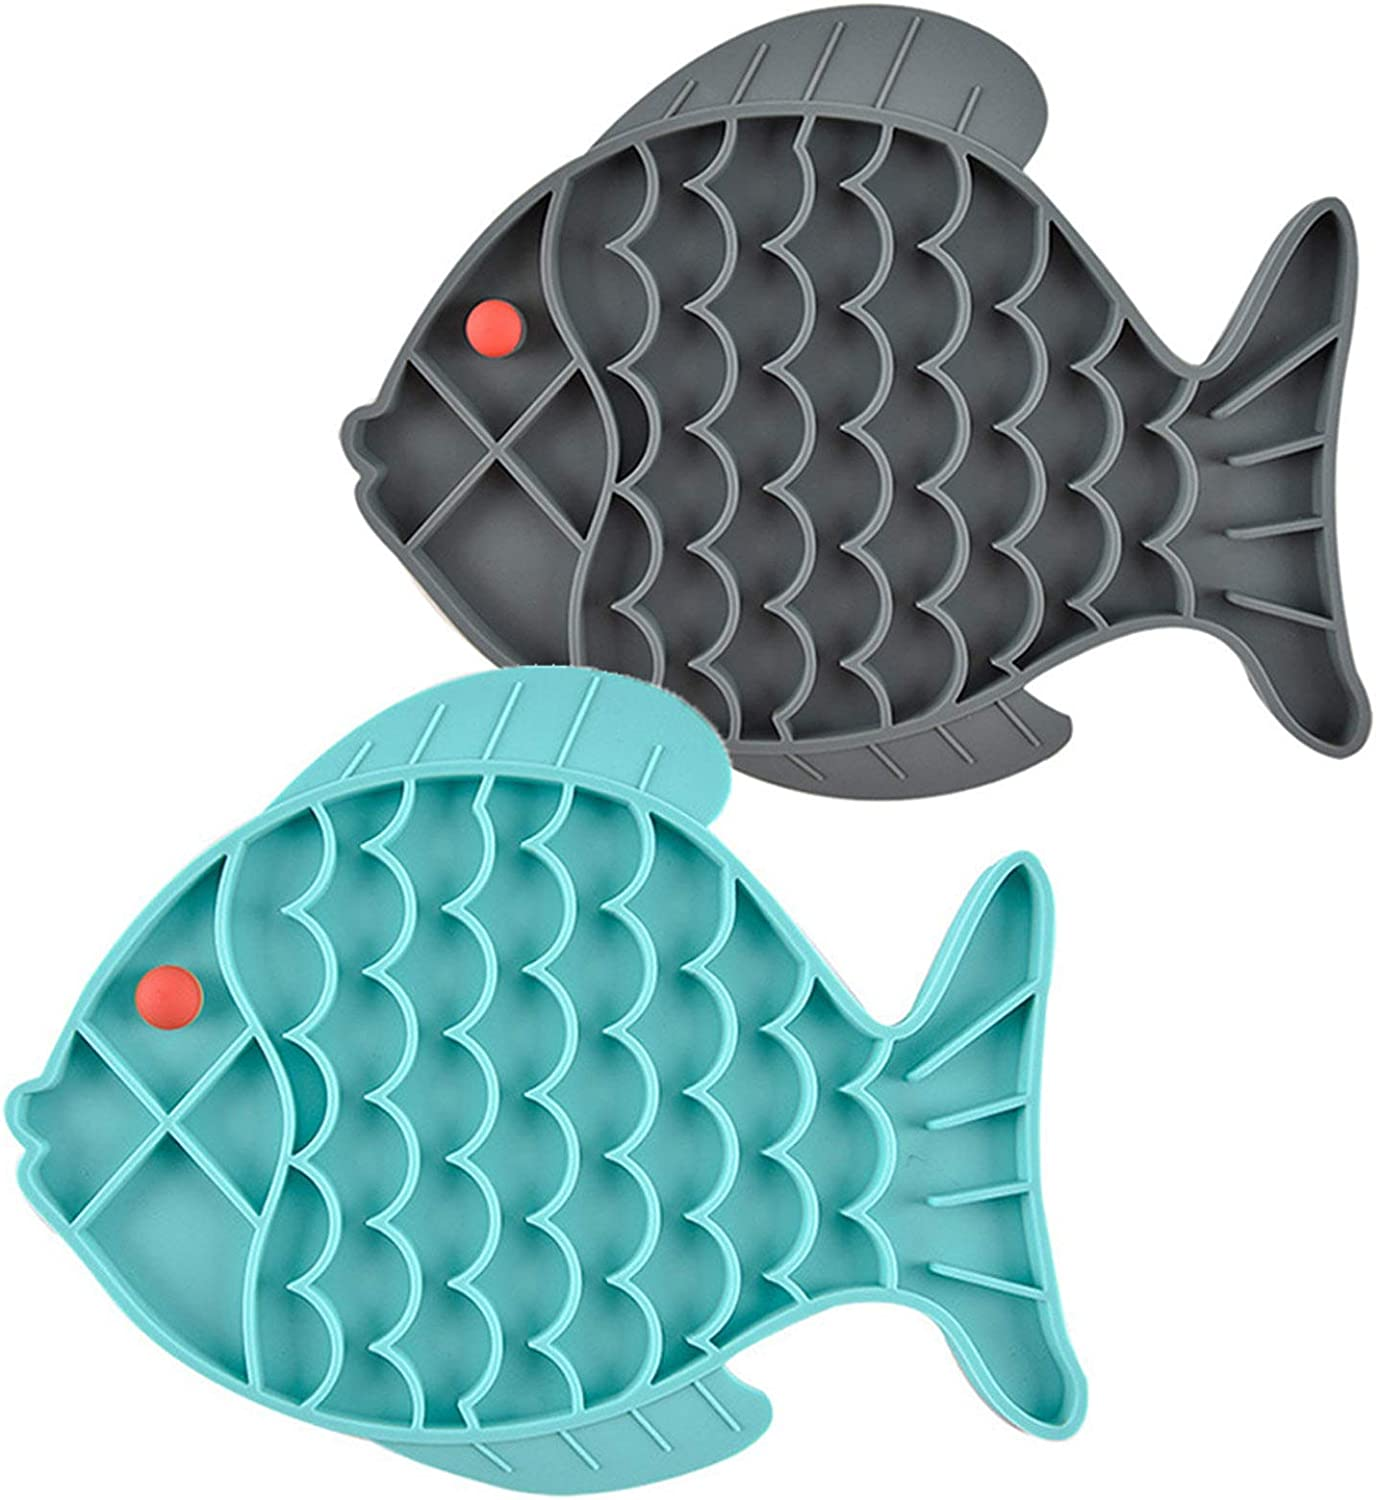 Cat Slow Feeder Bowl Fish-Shaped Cat Puzzle Feeder Food Mat for Small Dog & Cats Slow Eating, Cat Treat Toy, Anxiety Relief ( 2 PCS)